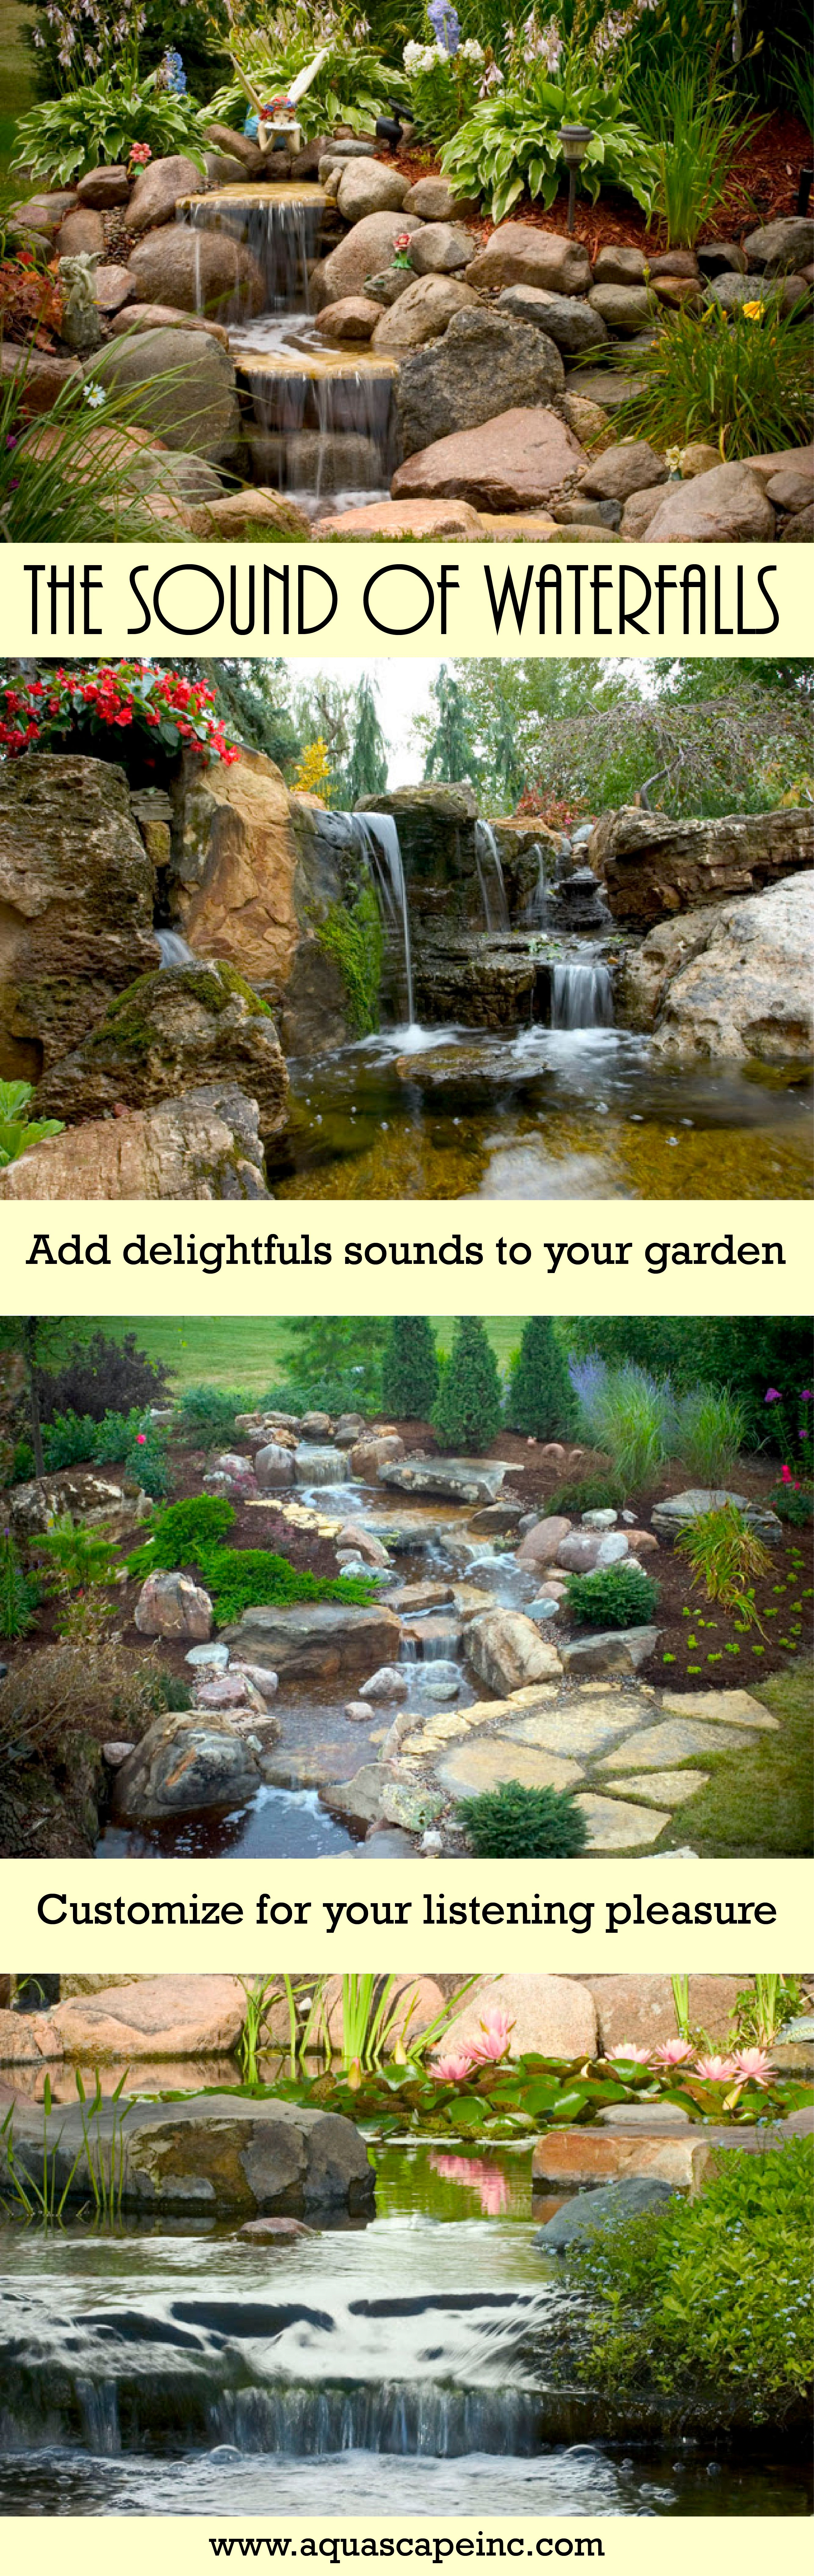 sights and sounds of waterfalls ponds and water features